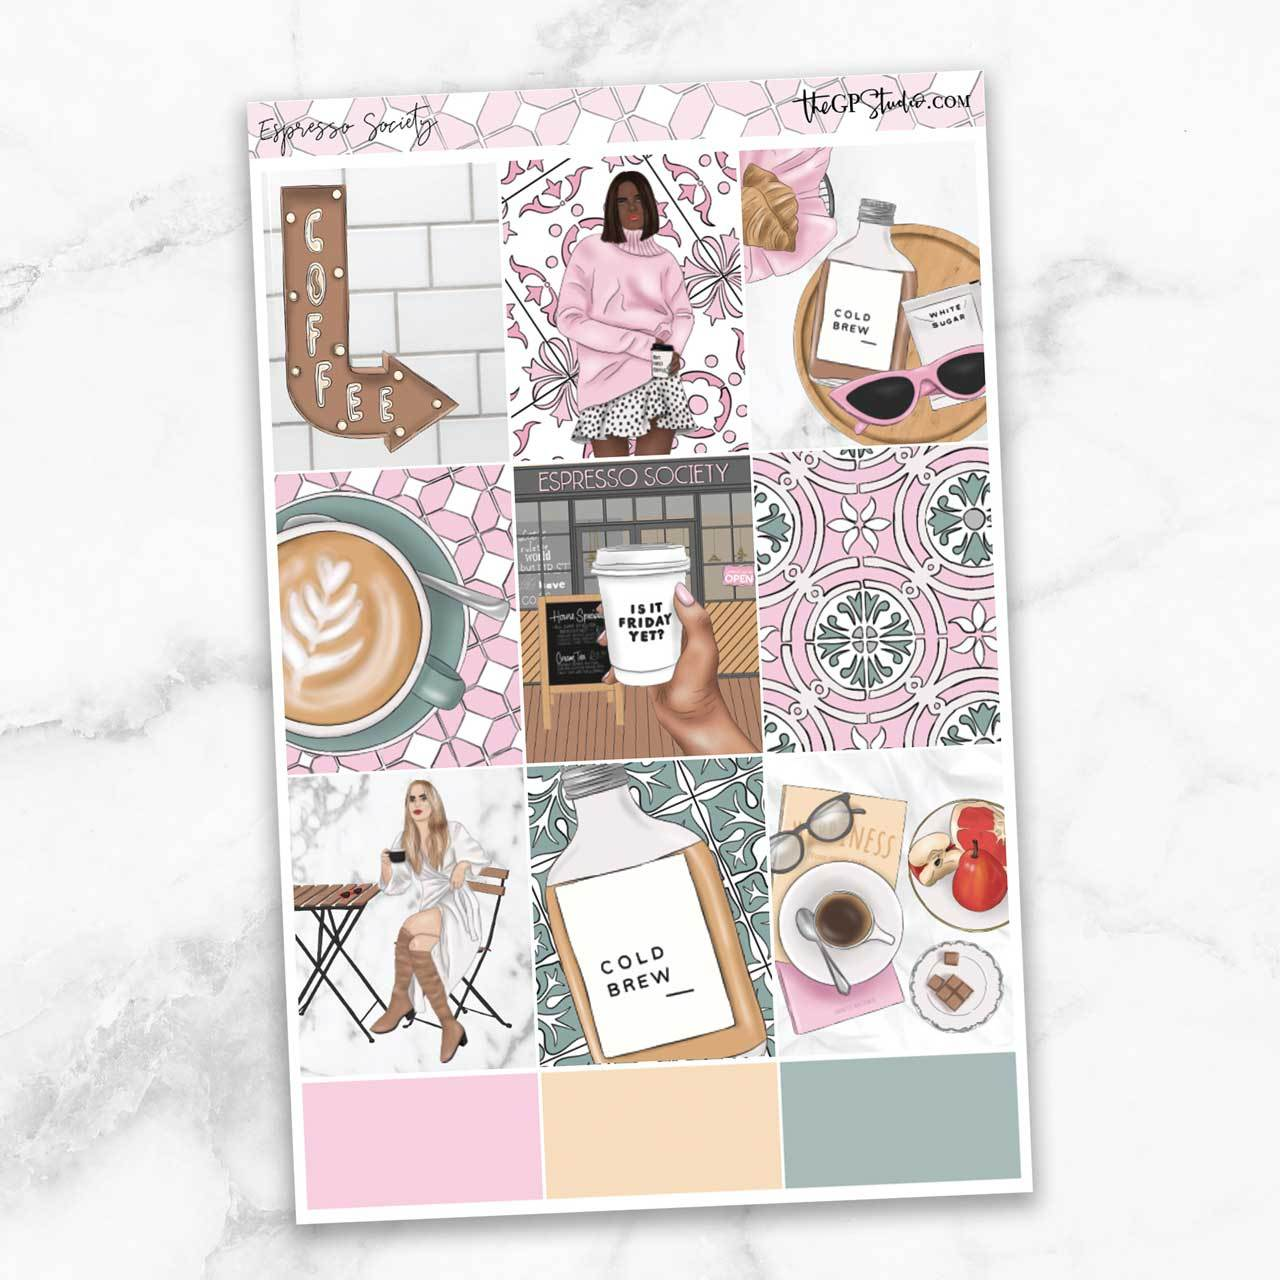 ESPRESSO SOCIETY Full Boxes Planner Stickers-The GP Studio